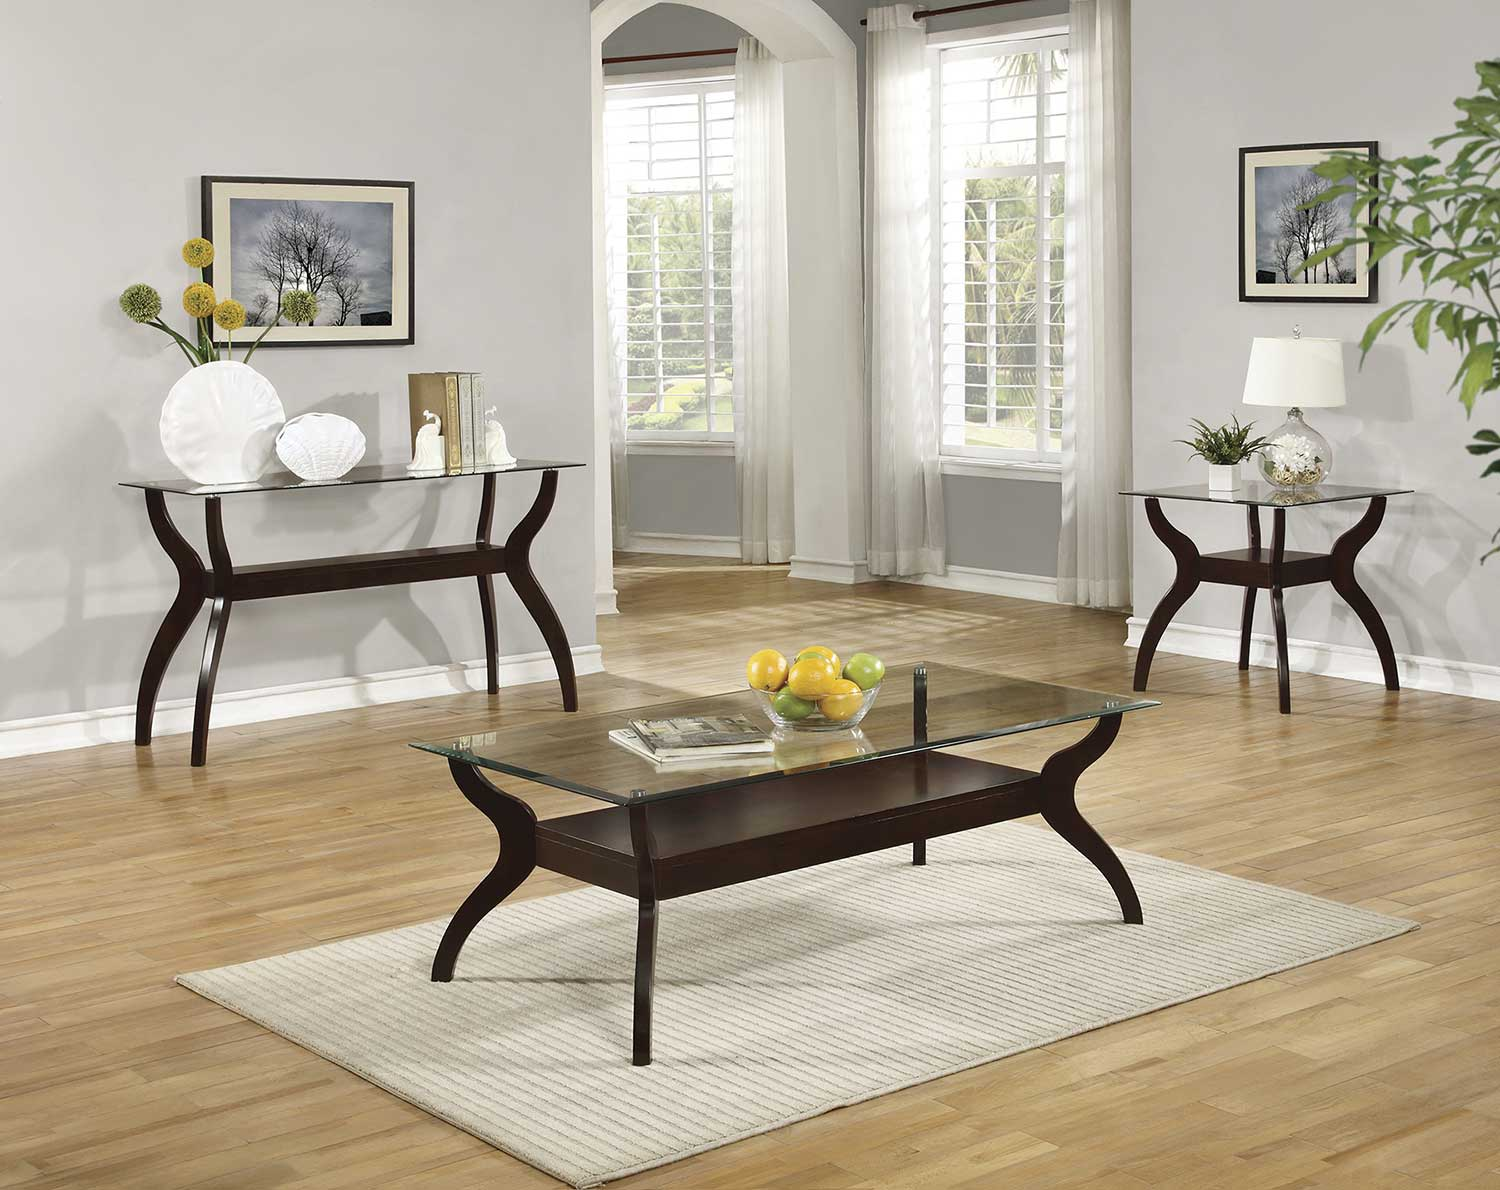 Coaster 704628 Coffee Table Set - Cappuccino / Tempered Glass